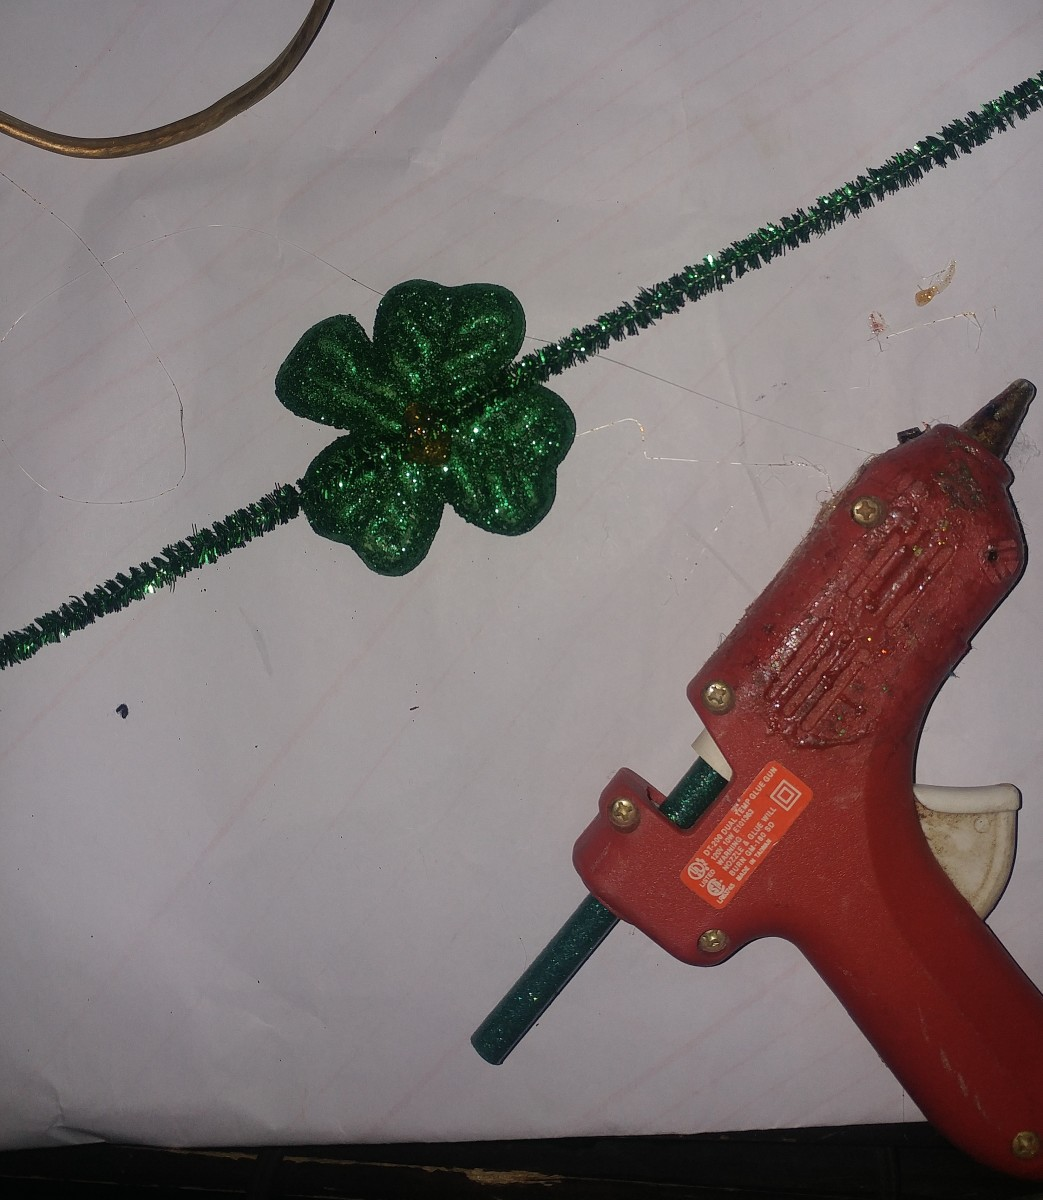 Hot glue shamrock on shiny fuzzy stick.